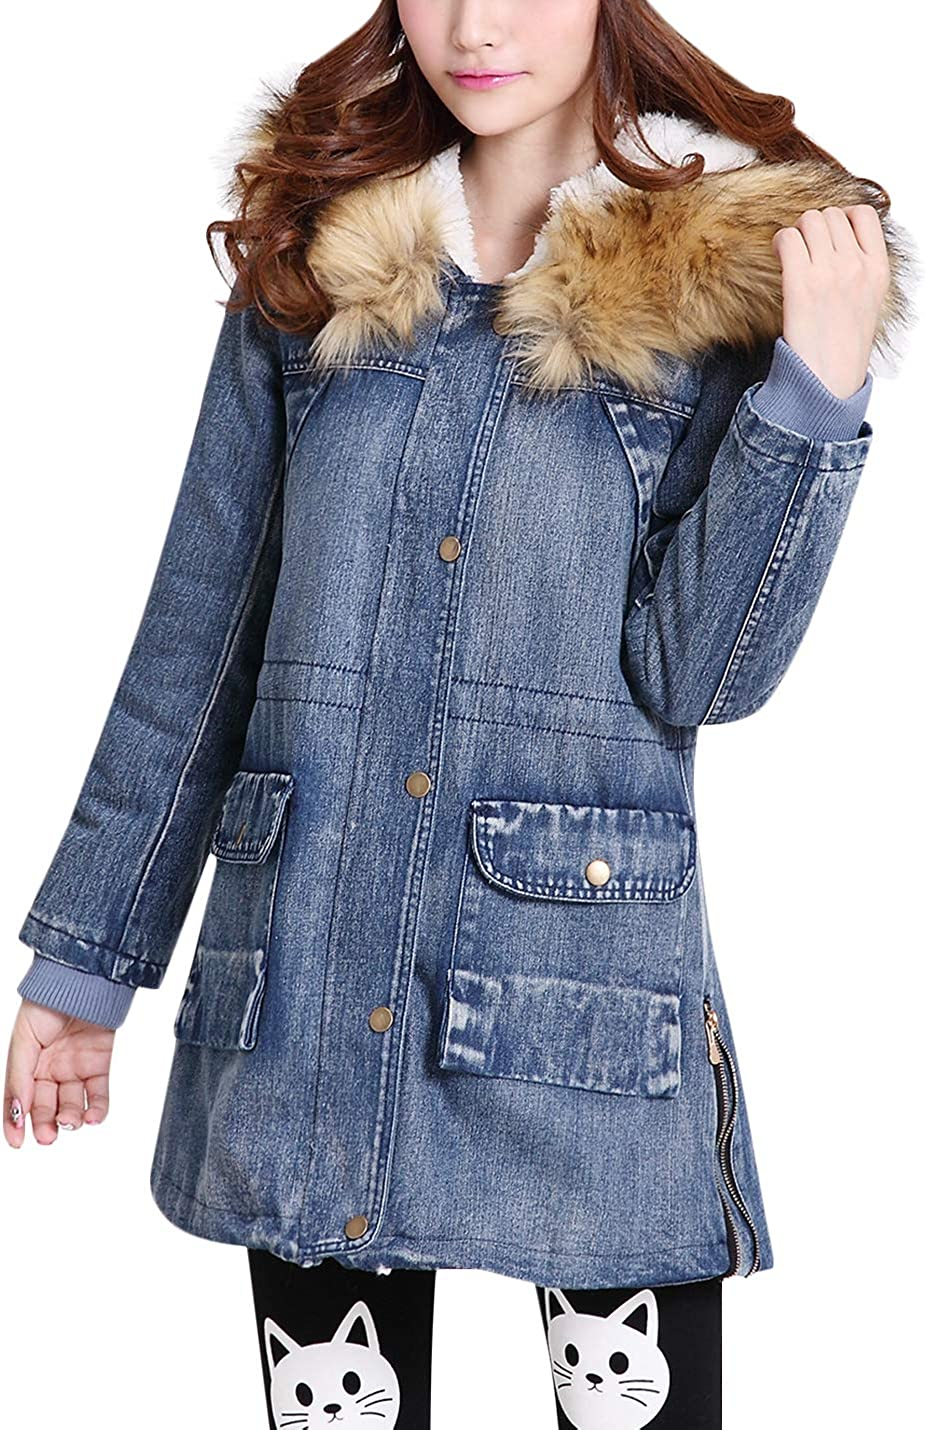 Uaneo Women's Winter Warm Hooded Sherpa Lined Long Denim Jacket Coat with Trim (Yellow, Large)